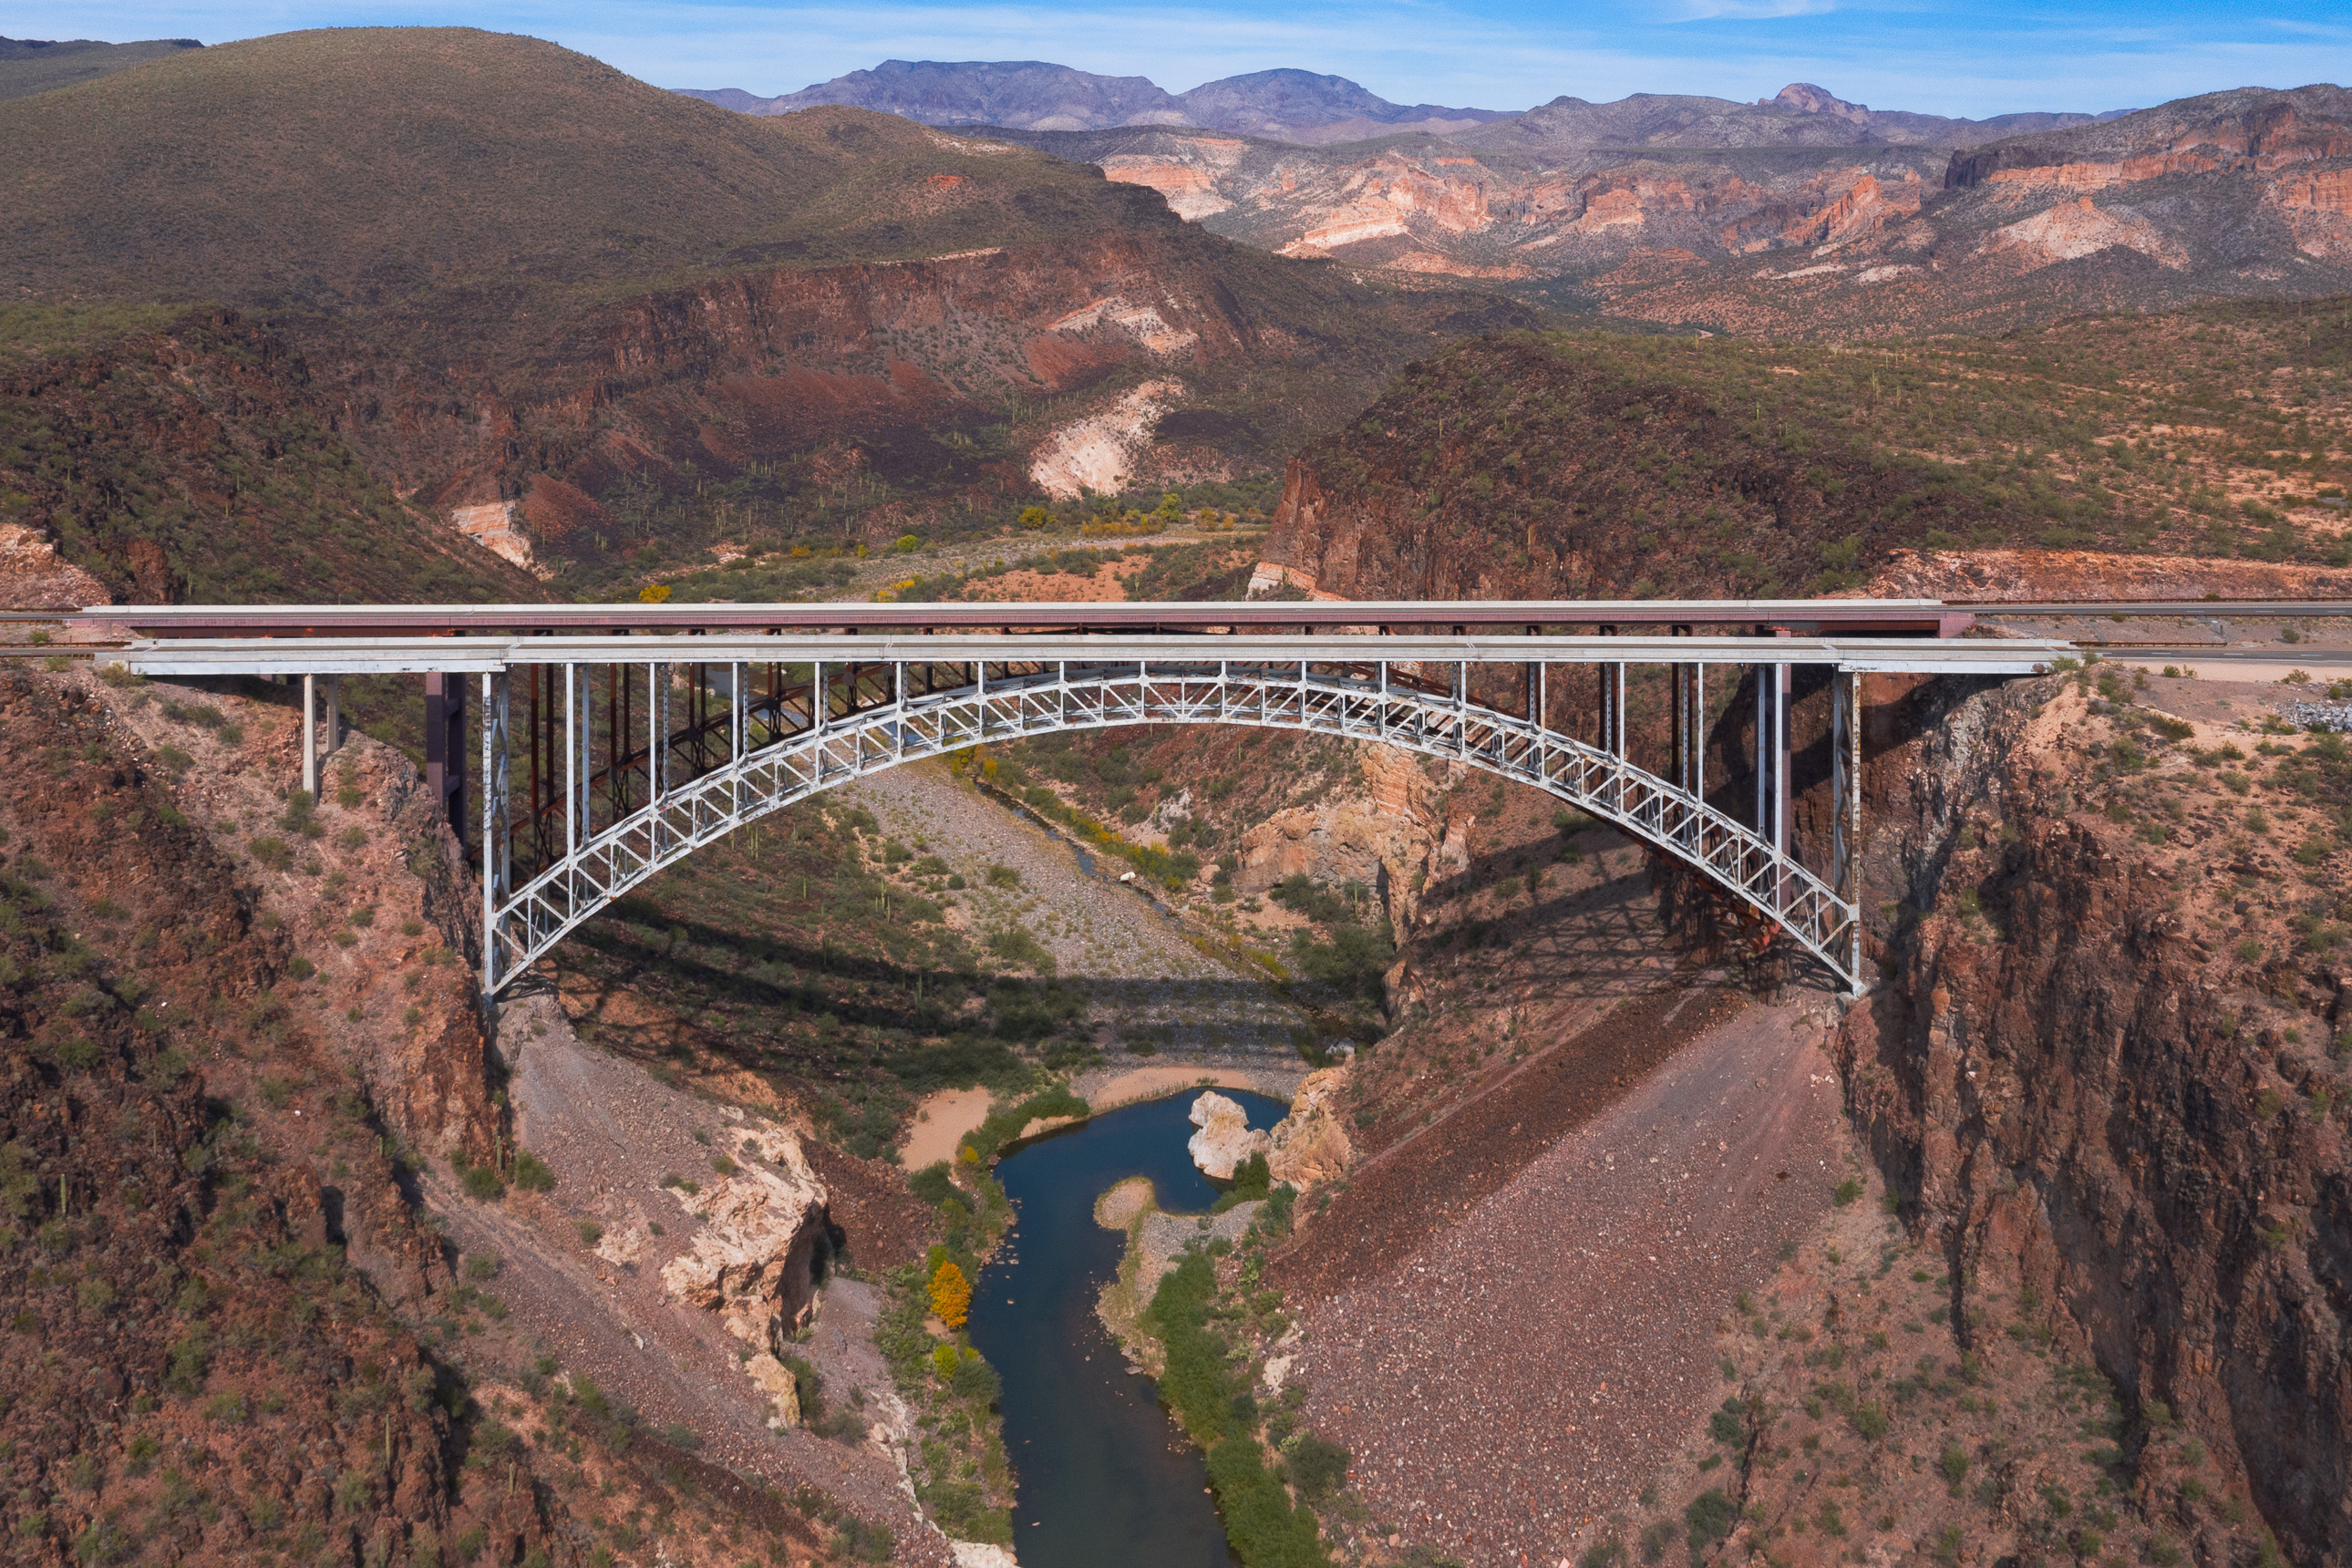 Burro Creek Bridge in Arizona